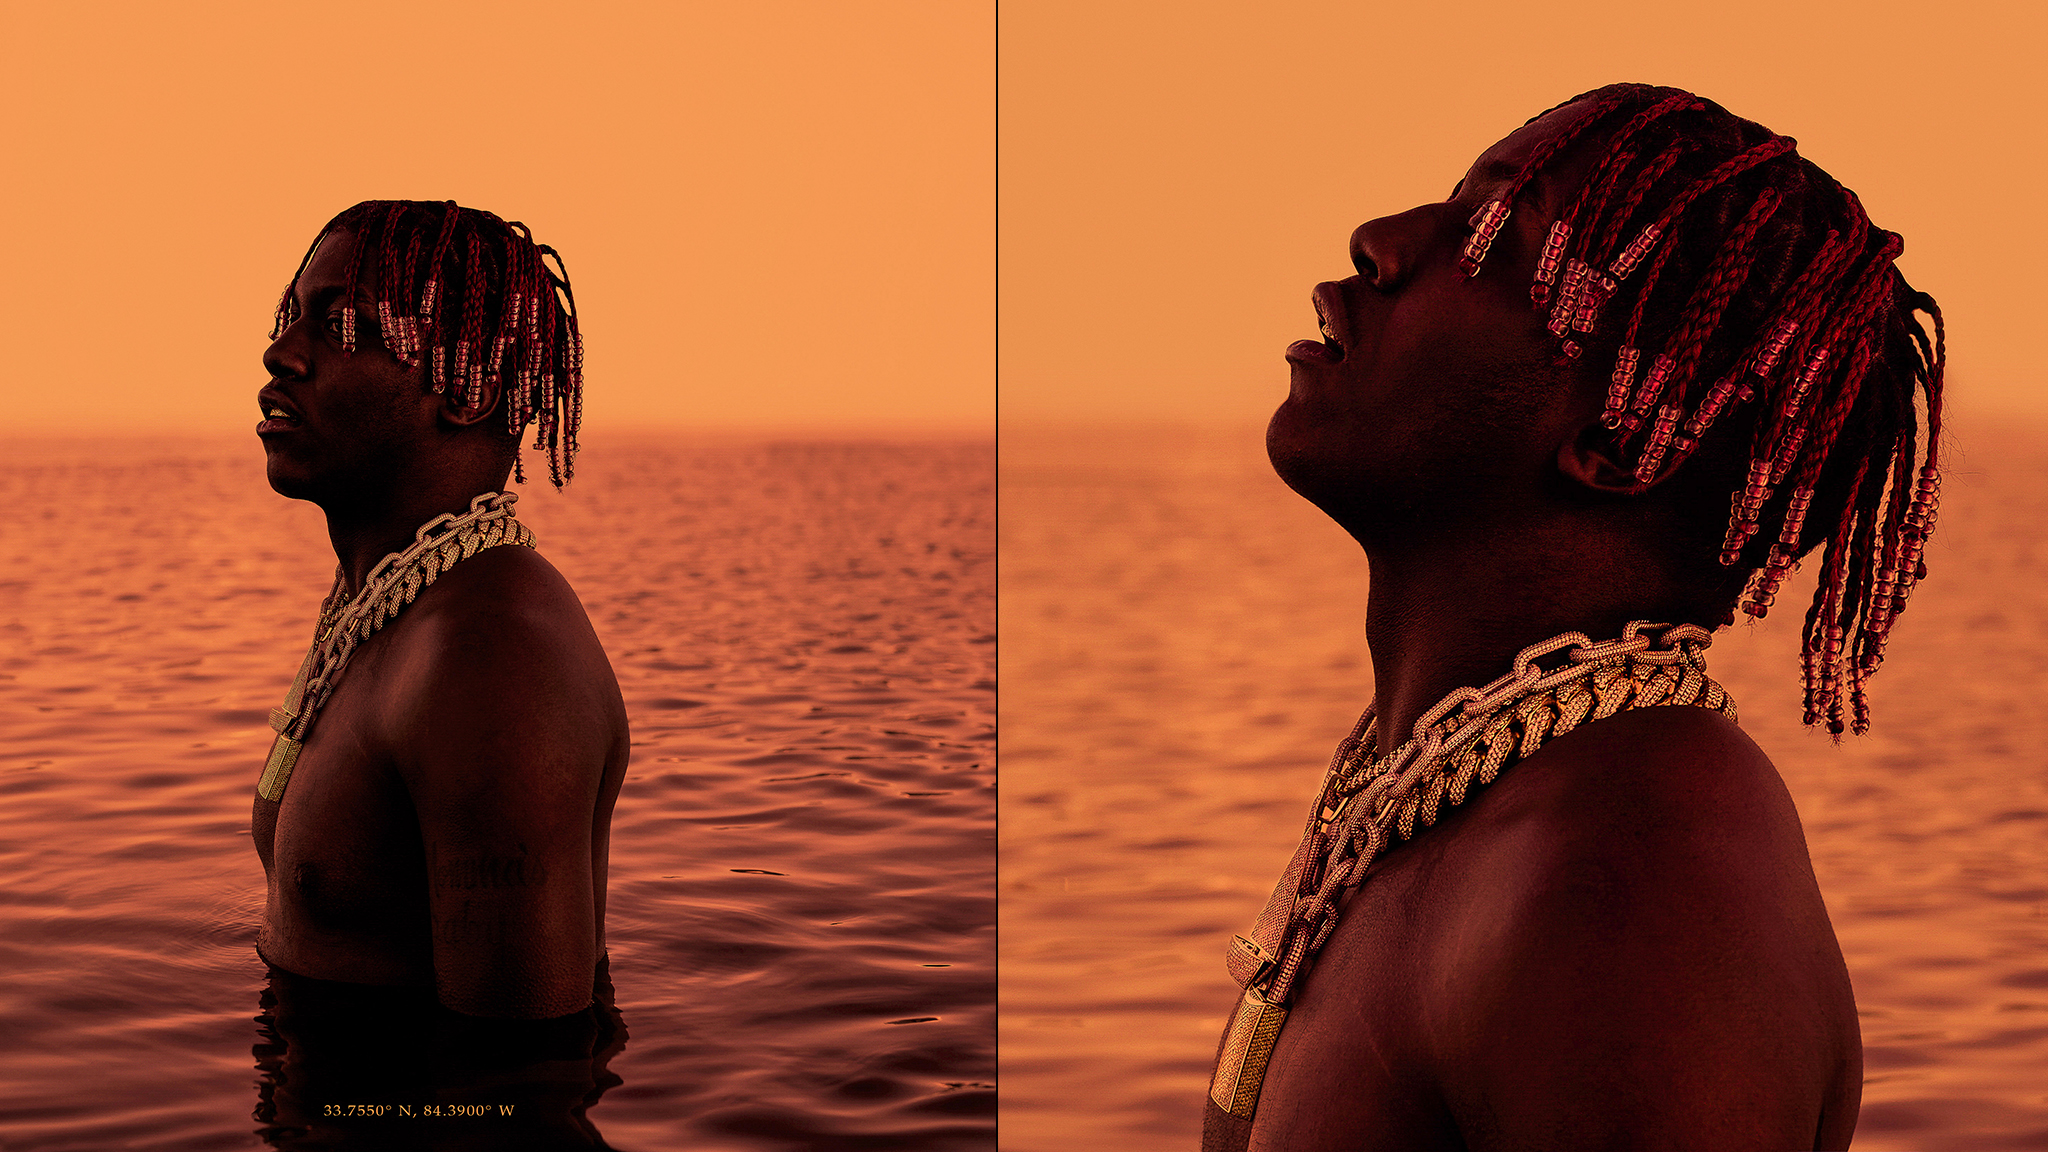 Lil Yachty is slated to play X Games Norway 2018.